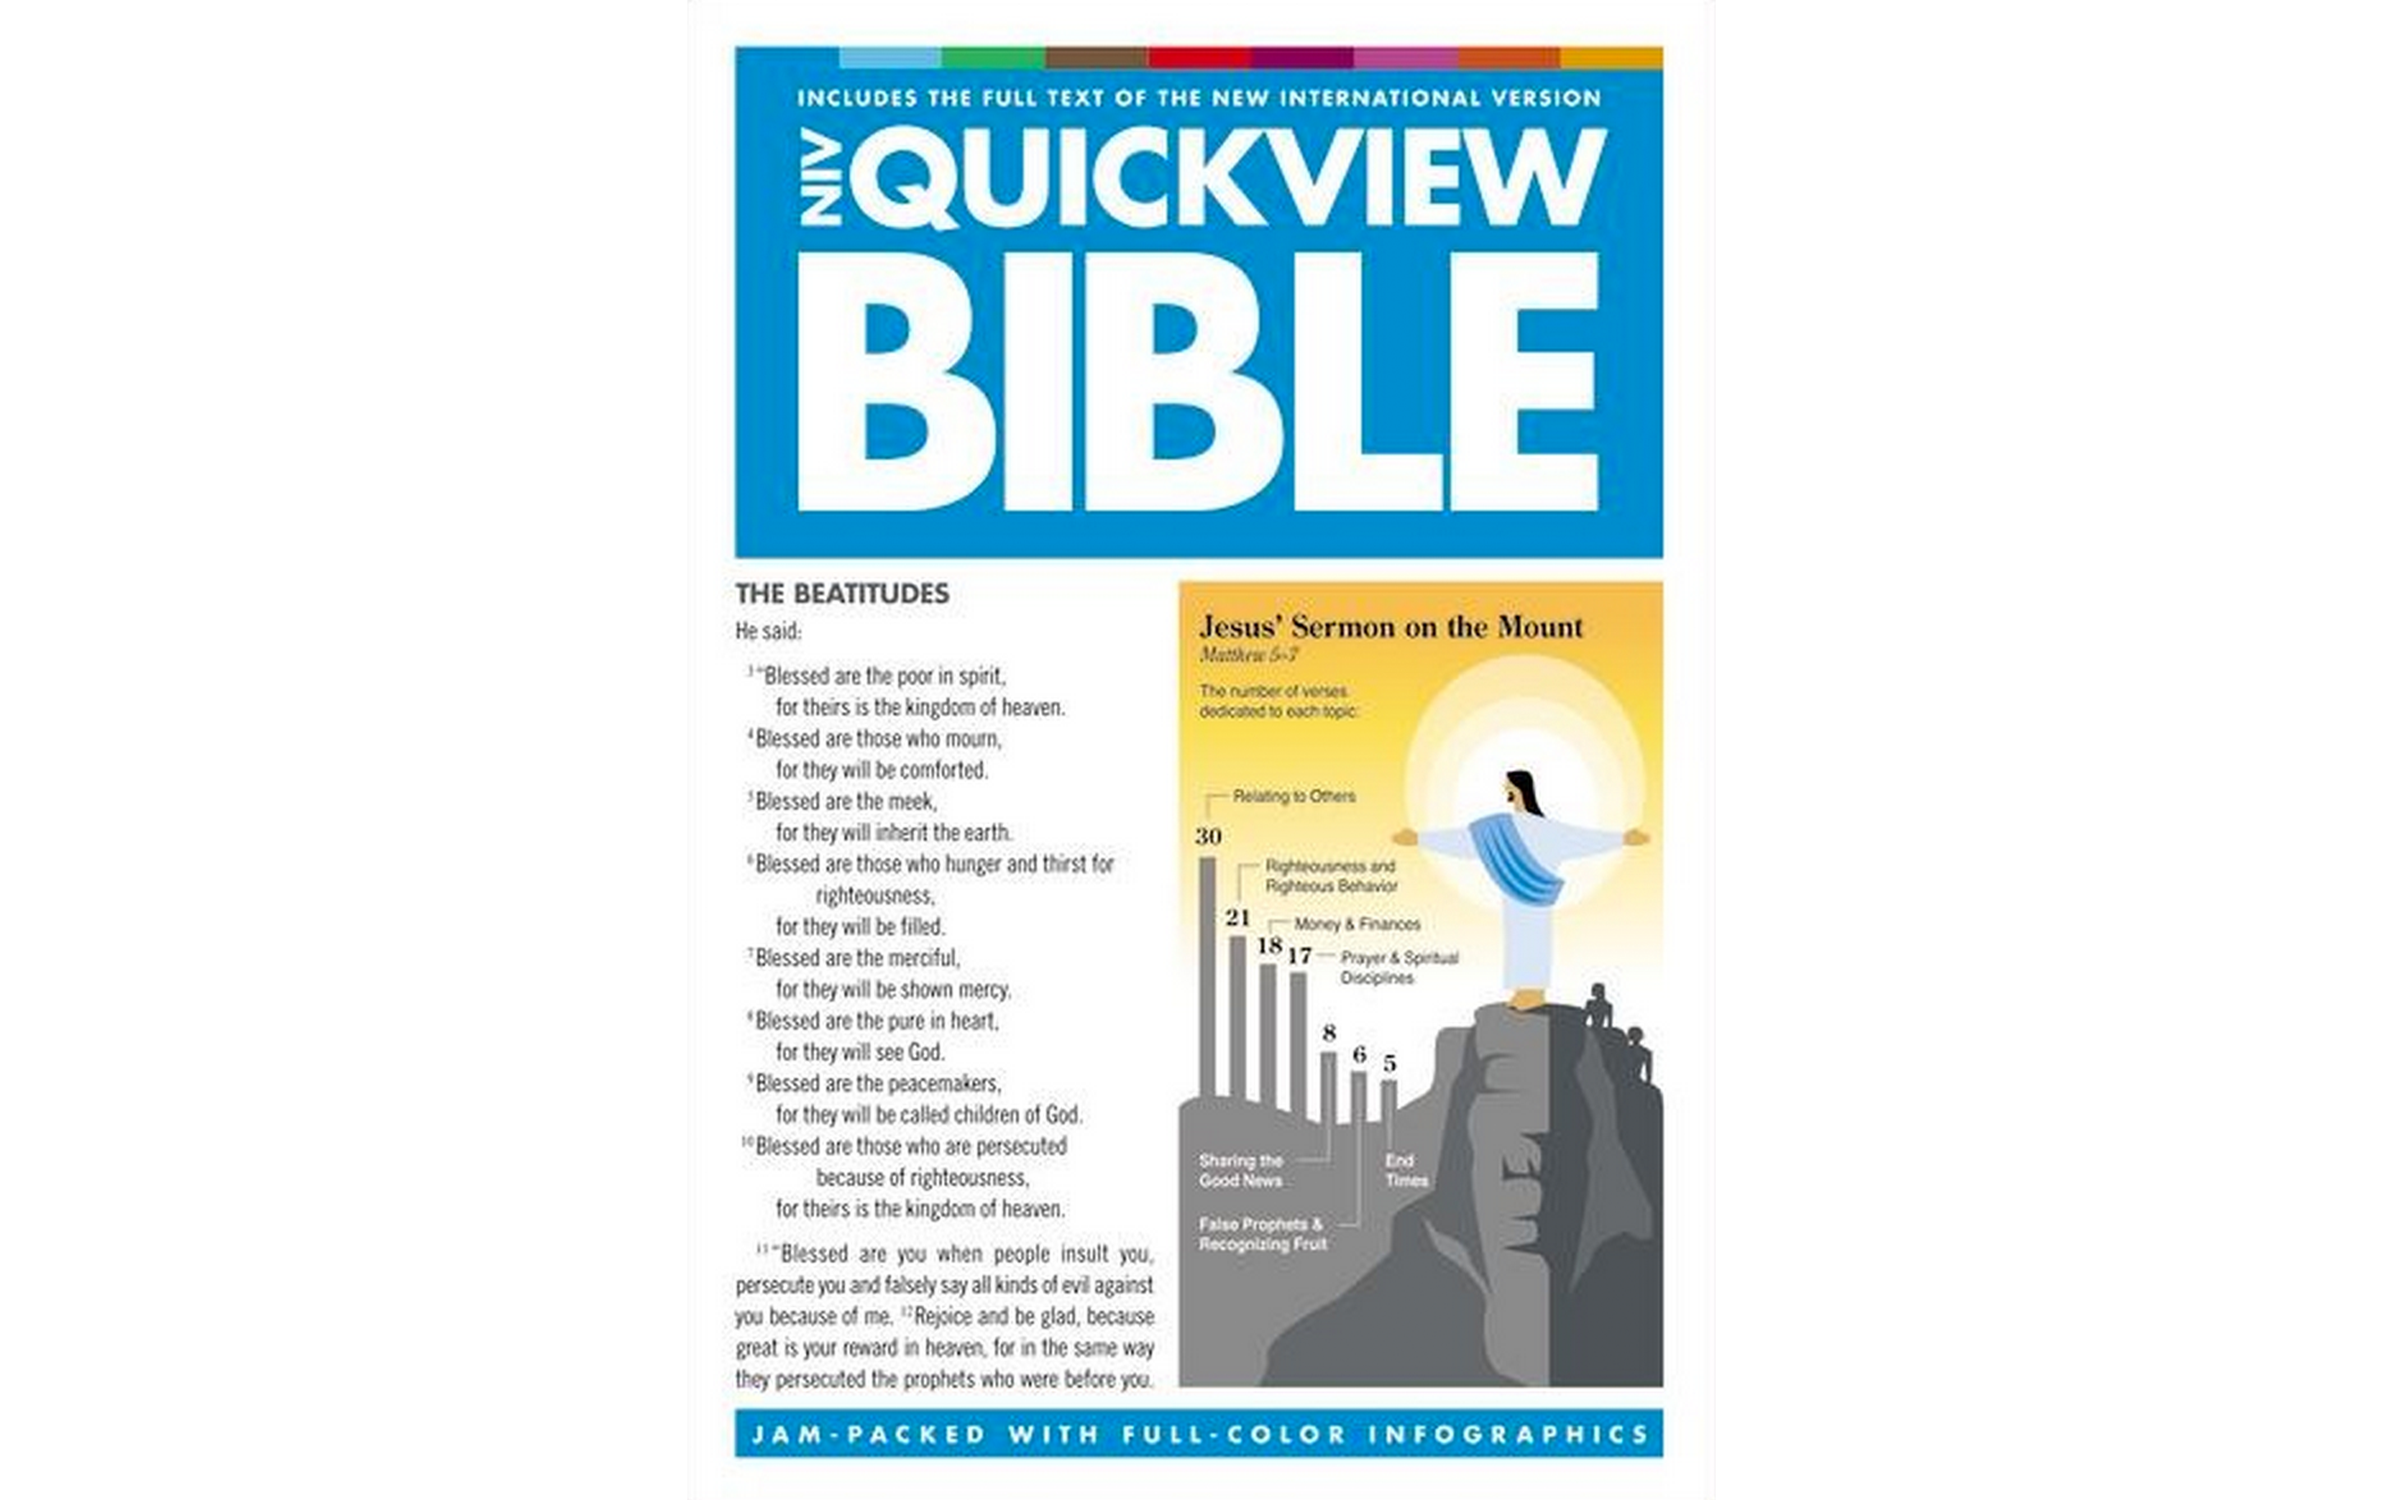 QuickviewBible.png